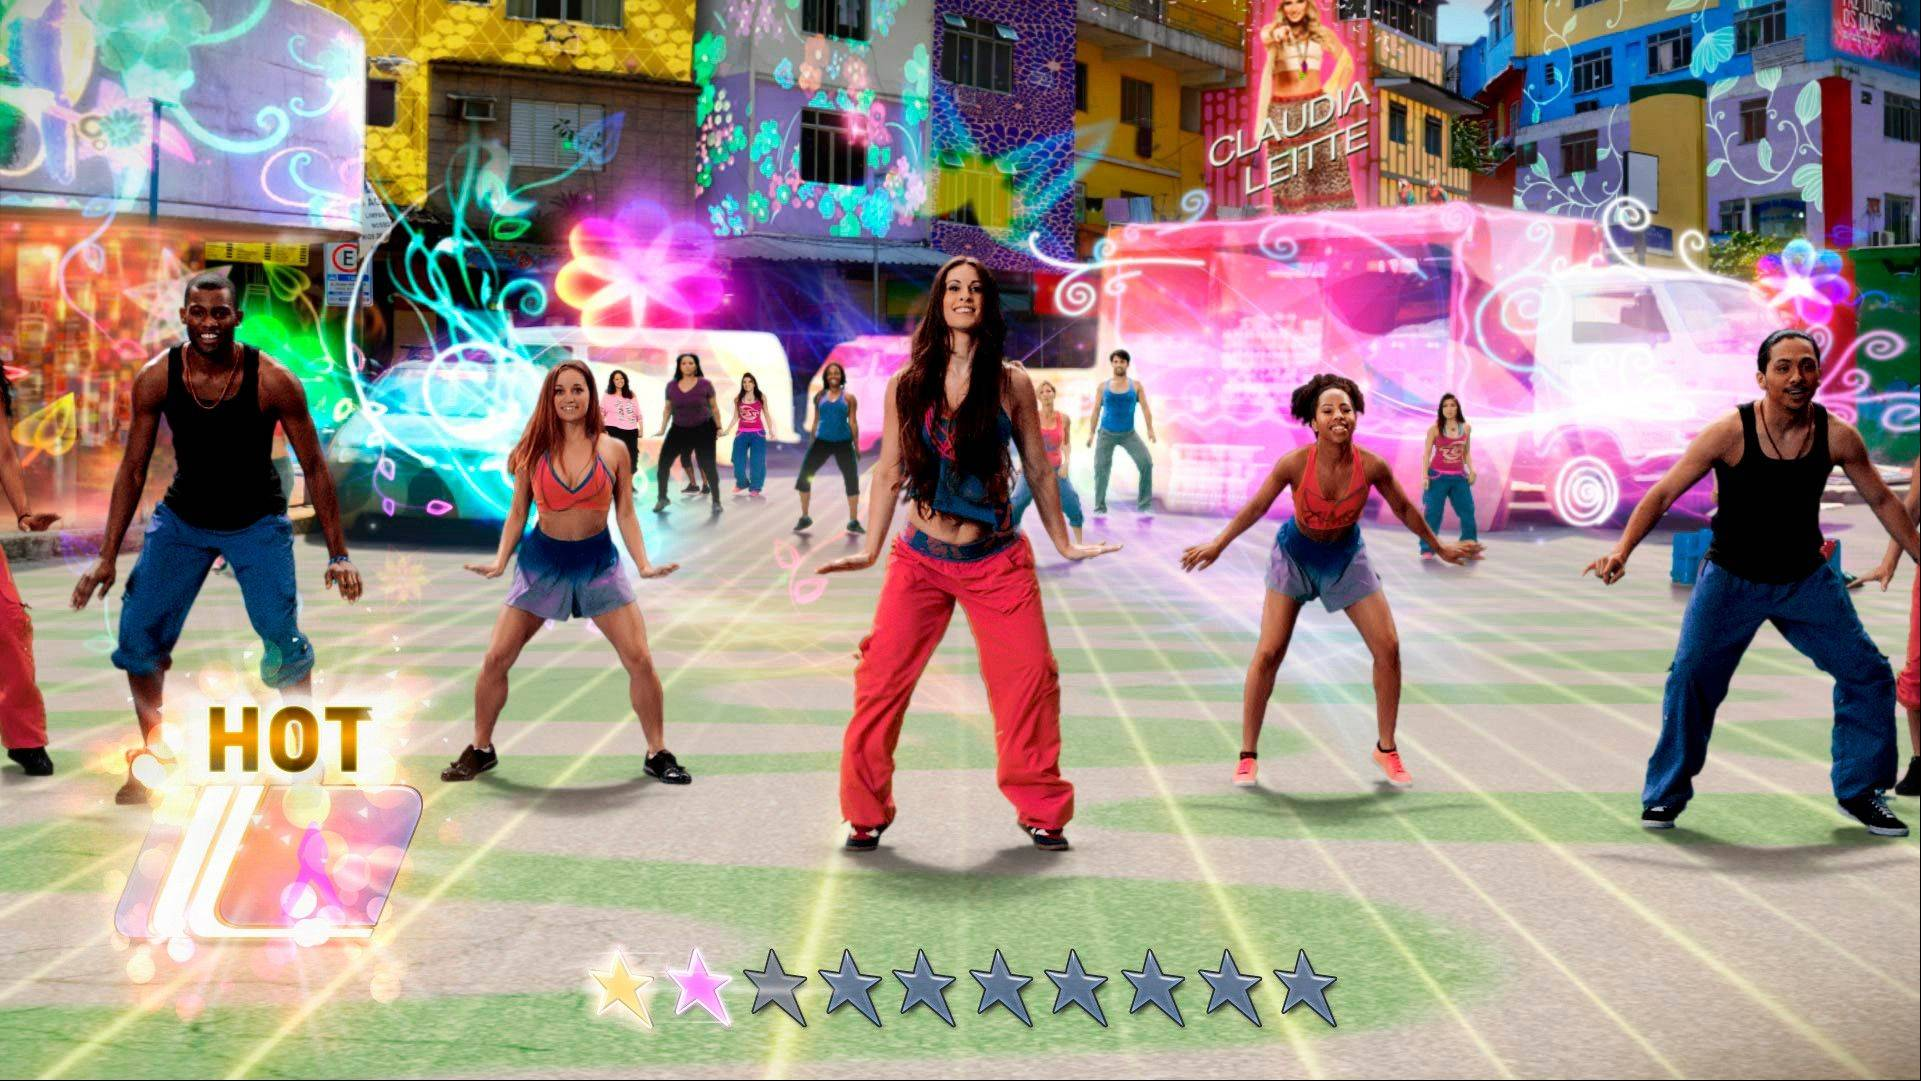 """Zumba Fitness: World Party,"" the latest entry in the hip-shaking empire's interactive catalog, goes global with a diverse lineup of Zumba routines led by real-world instructors in colorful renditions of such locales as Puerto Rico, Los Angeles, India and Hawaii."